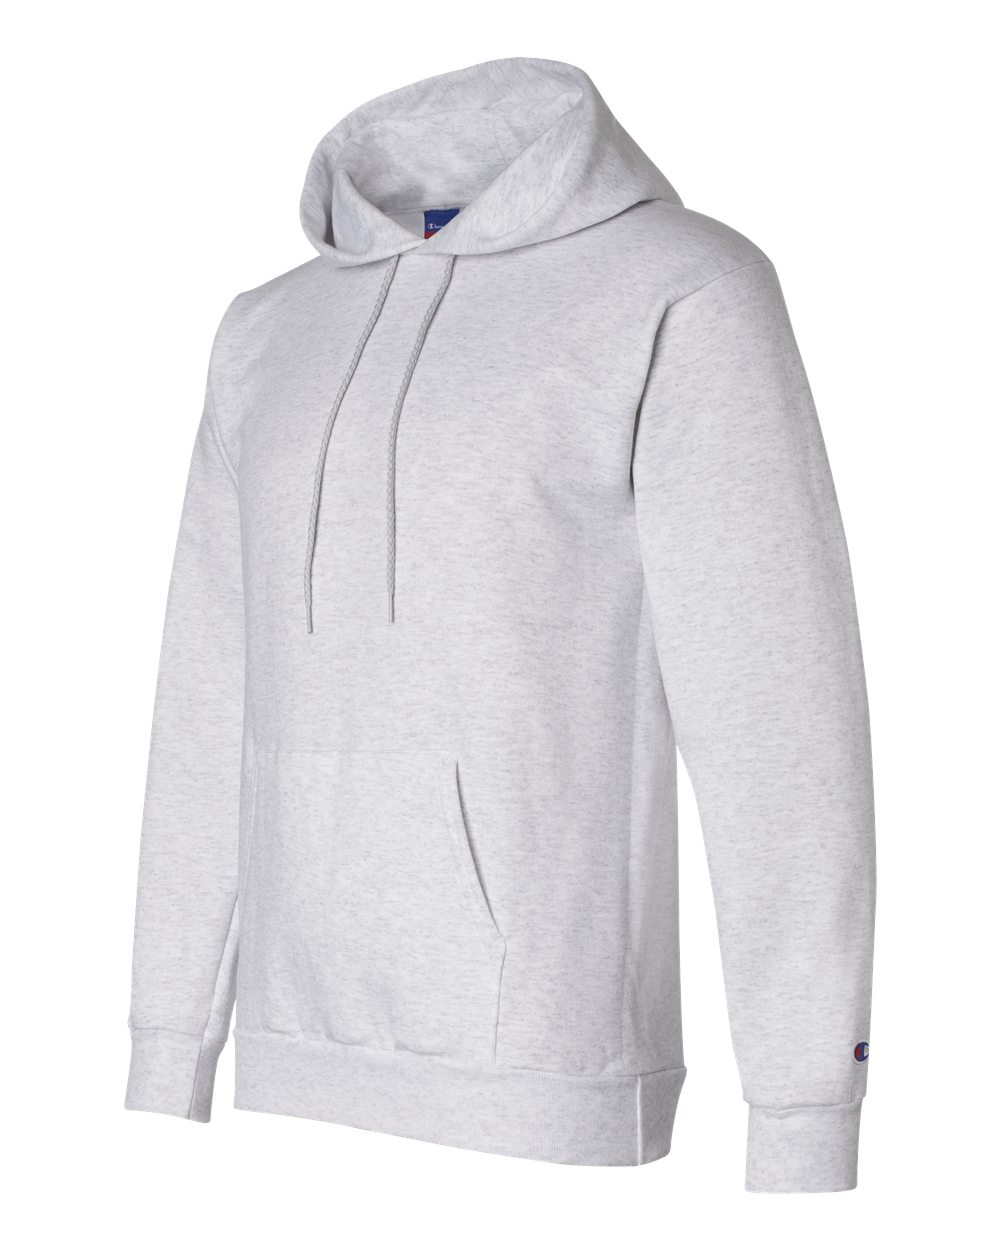 Champion - Champion Double Dry Eco Hooded Sweatshirt - Walmart.com e79e5746ae3